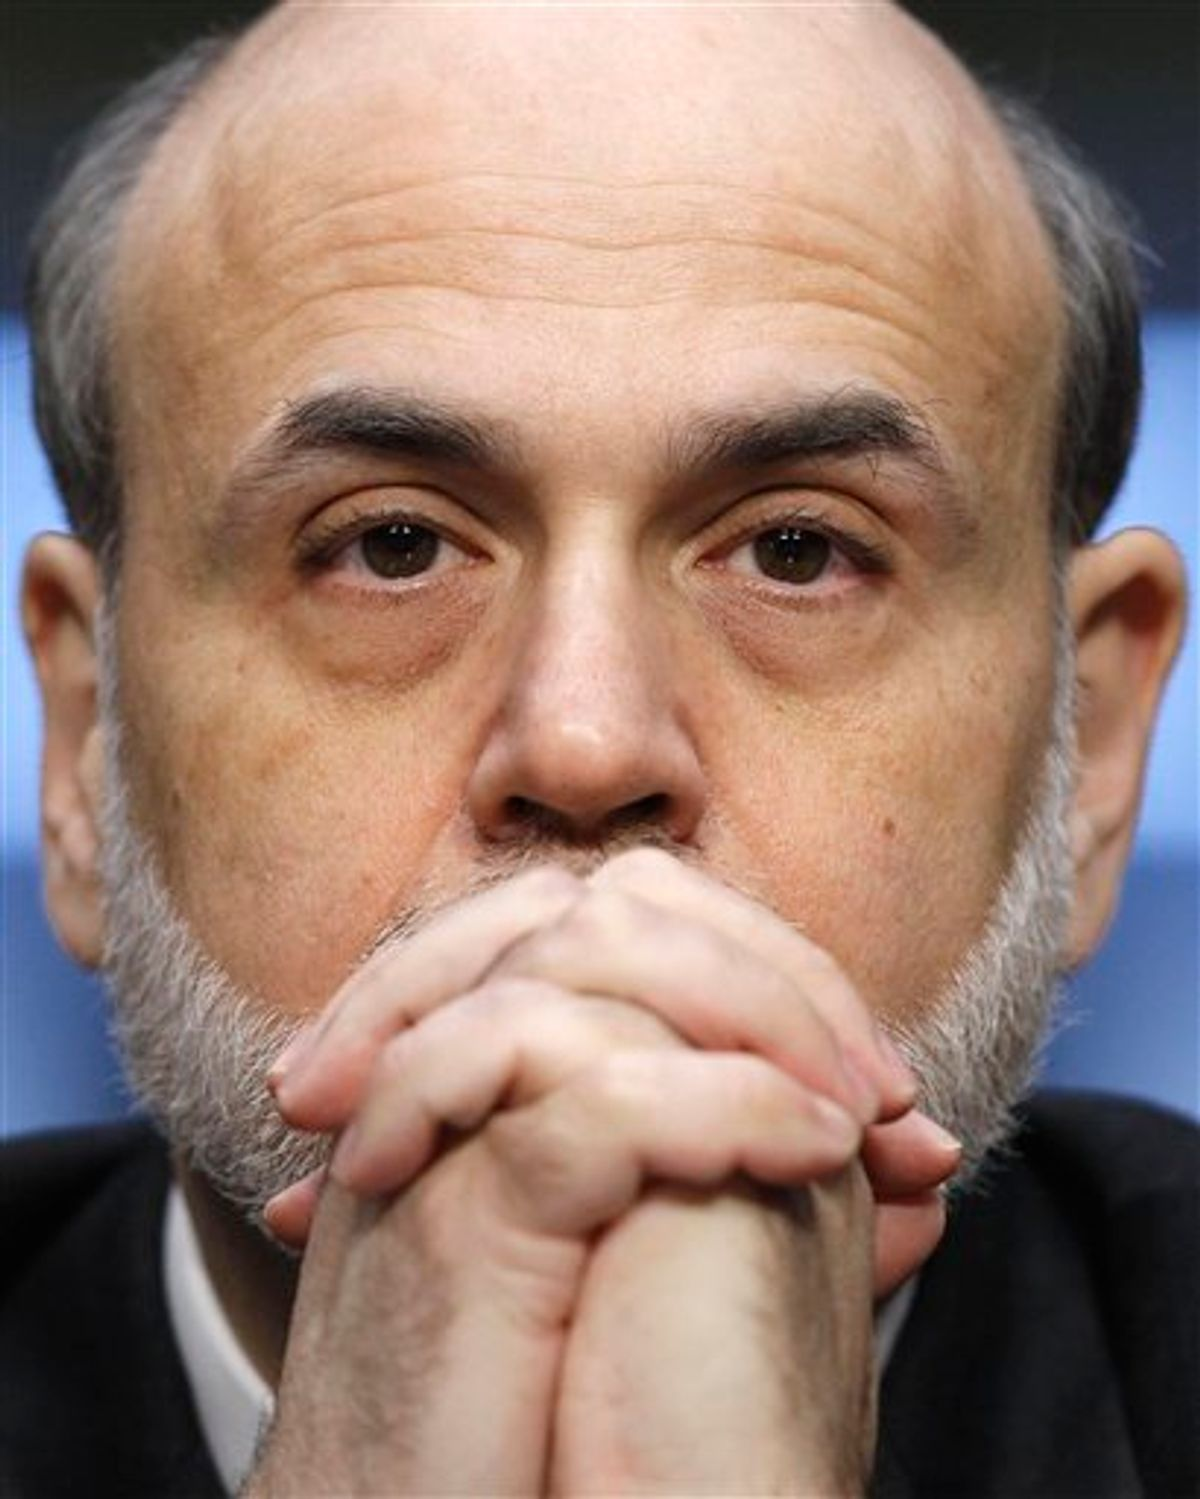 FILE - In his March 1, 2011 file photo, Federal Reserve Chairman Ben Bernanke tetsifies on Capitol Hill in Washington, before the Senate Banking Committee. The United States has never defaulted on its debt and leaders from both parties say they don't want it to happen now. But with partisan acrimony running at fever pitch, and Democrats and Republicans far apart on how to tame the deficit, anything could happen. (AP Photo/Alex Brandon, File) (AP)